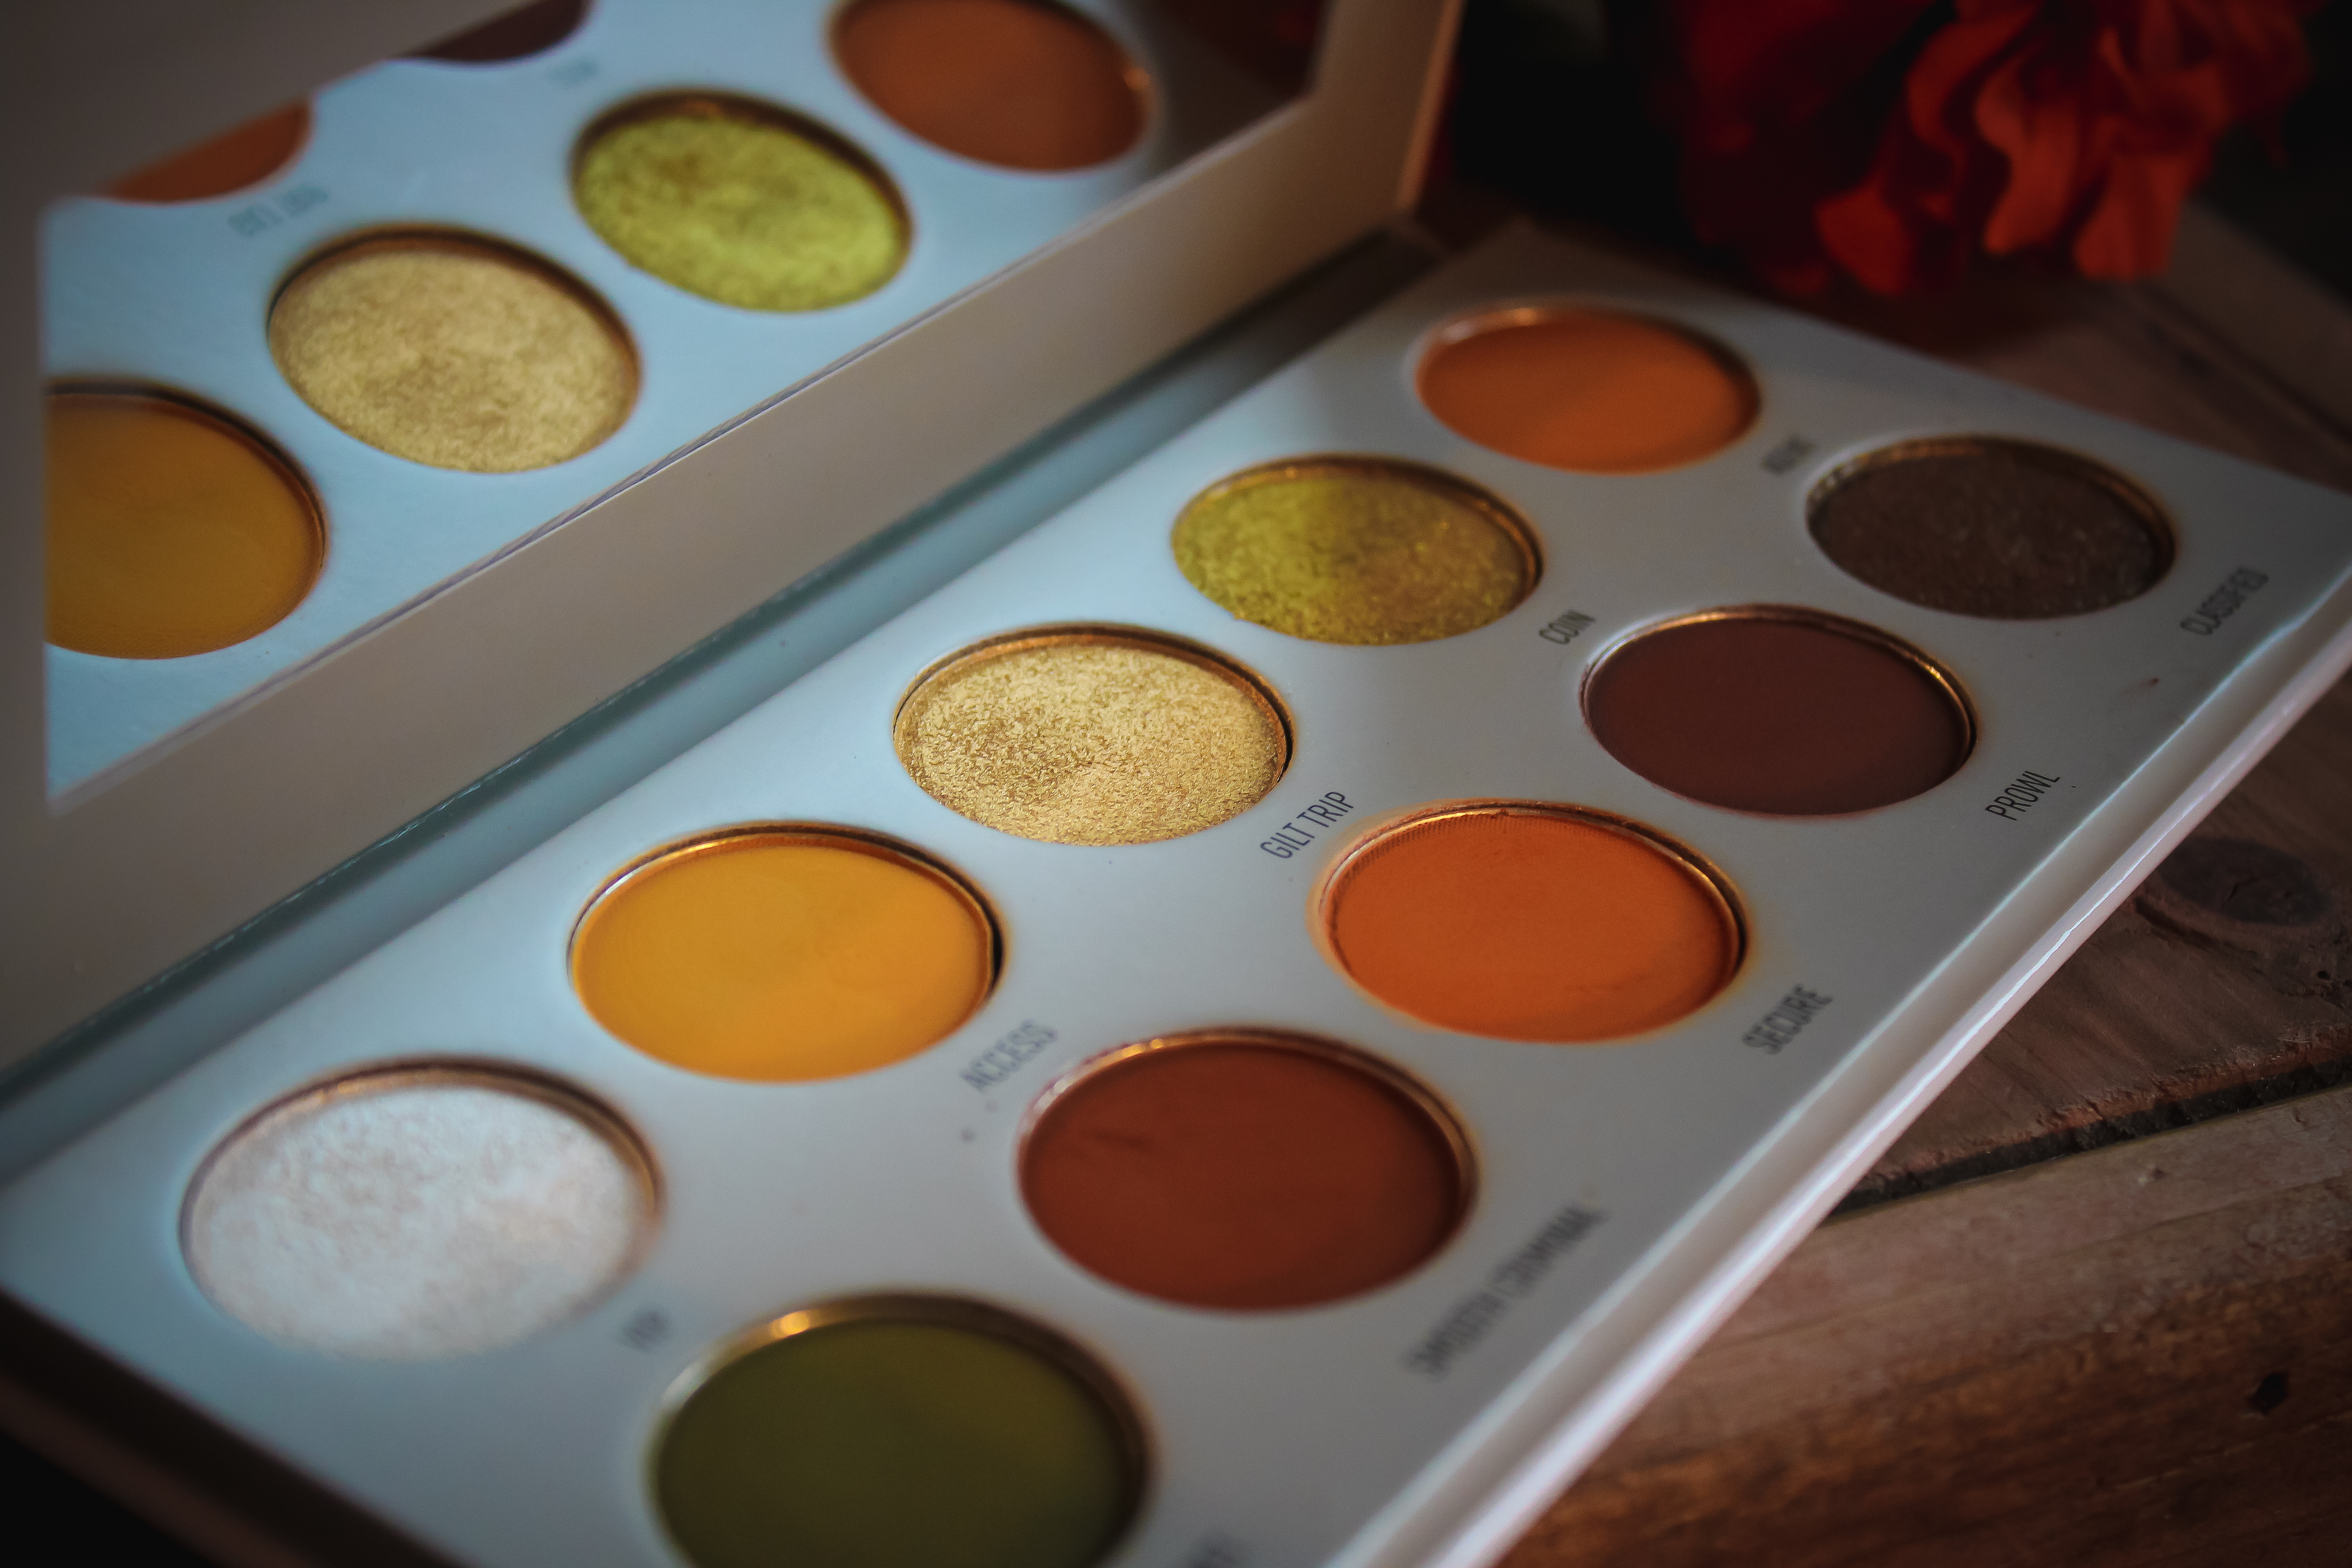 Morphe x Jaclyn Hill Armed and Gorgeous Palette